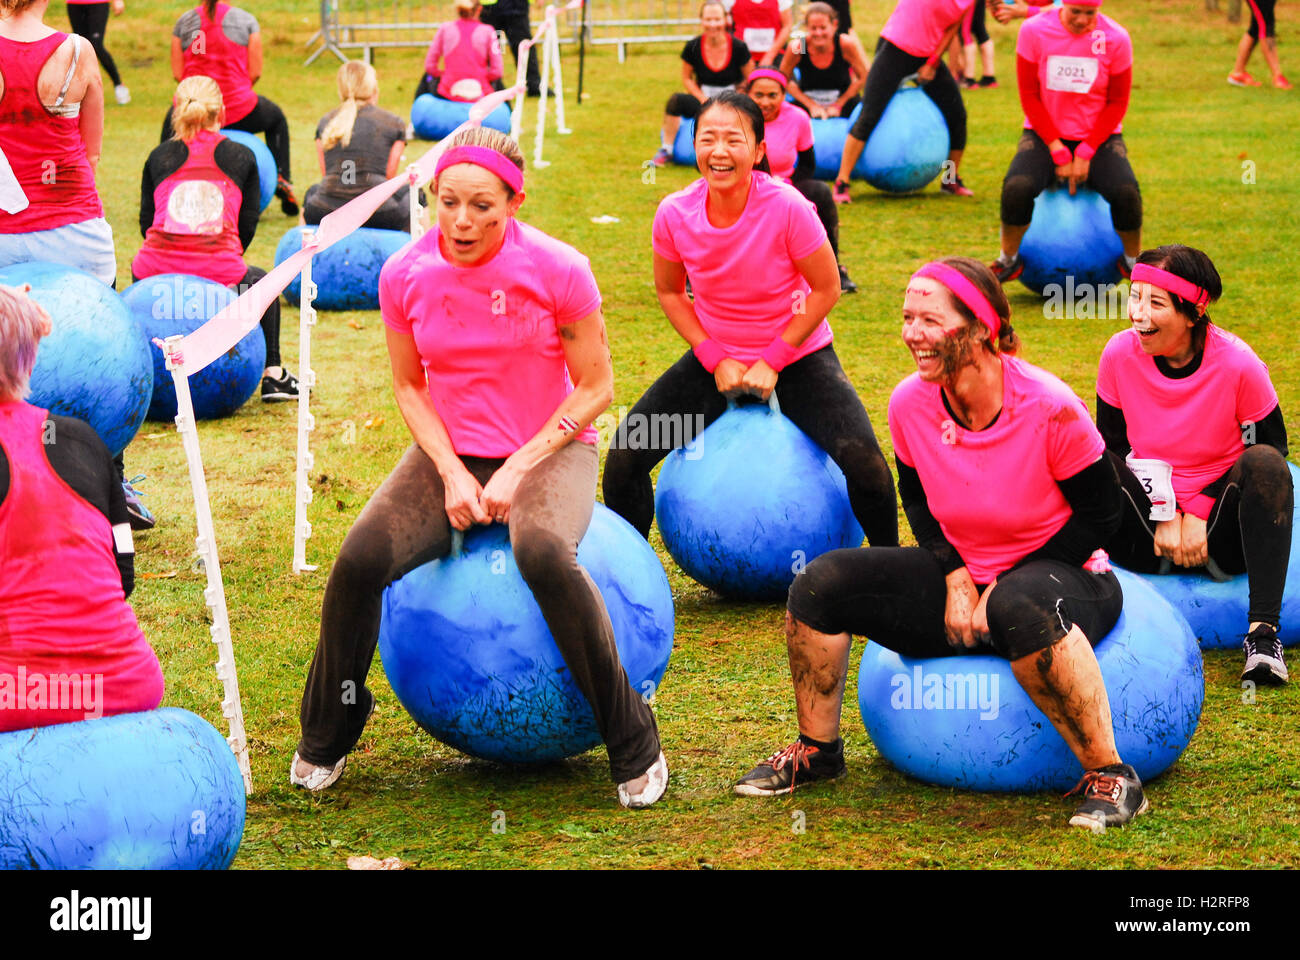 London, UK. 1st October, 2016. Pretty muddy Cancer research  5k charity run London Credit:  Philip Robins/Alamy - Stock Image